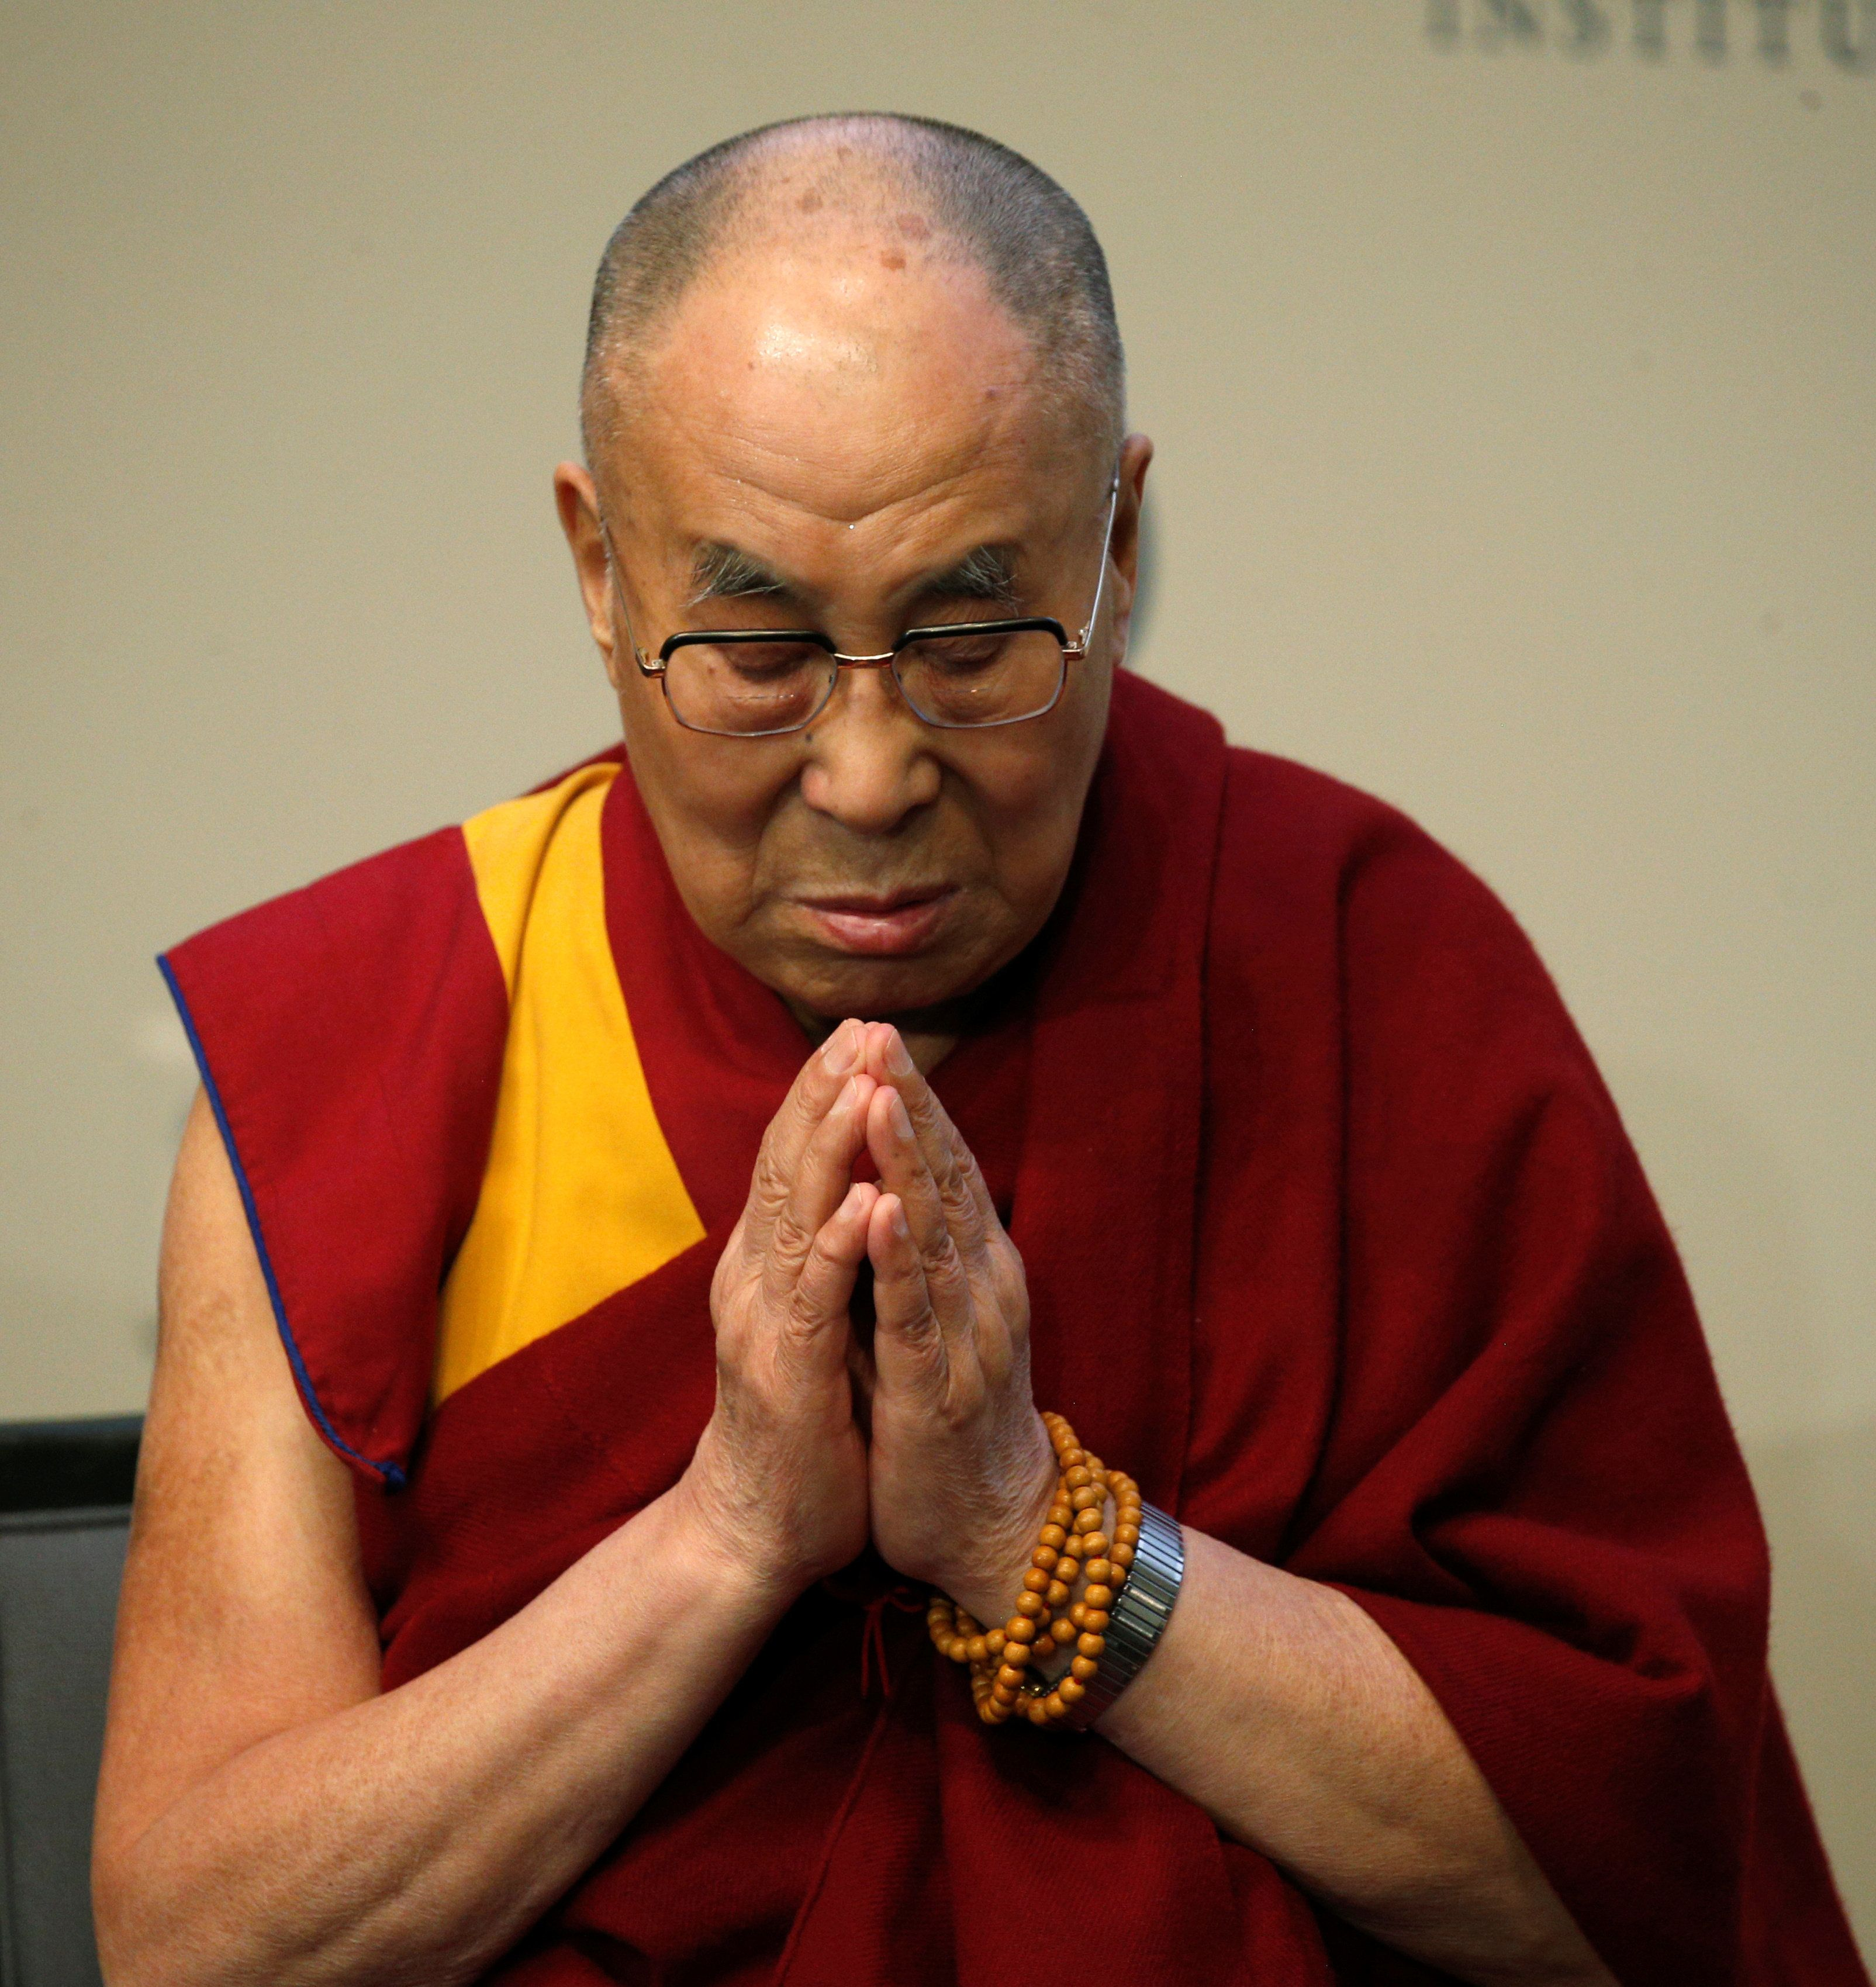 The Dalai Lama prays for the victims of the Orlando shooting before speaking at the U.S. Institute of Peace in Washington, D.